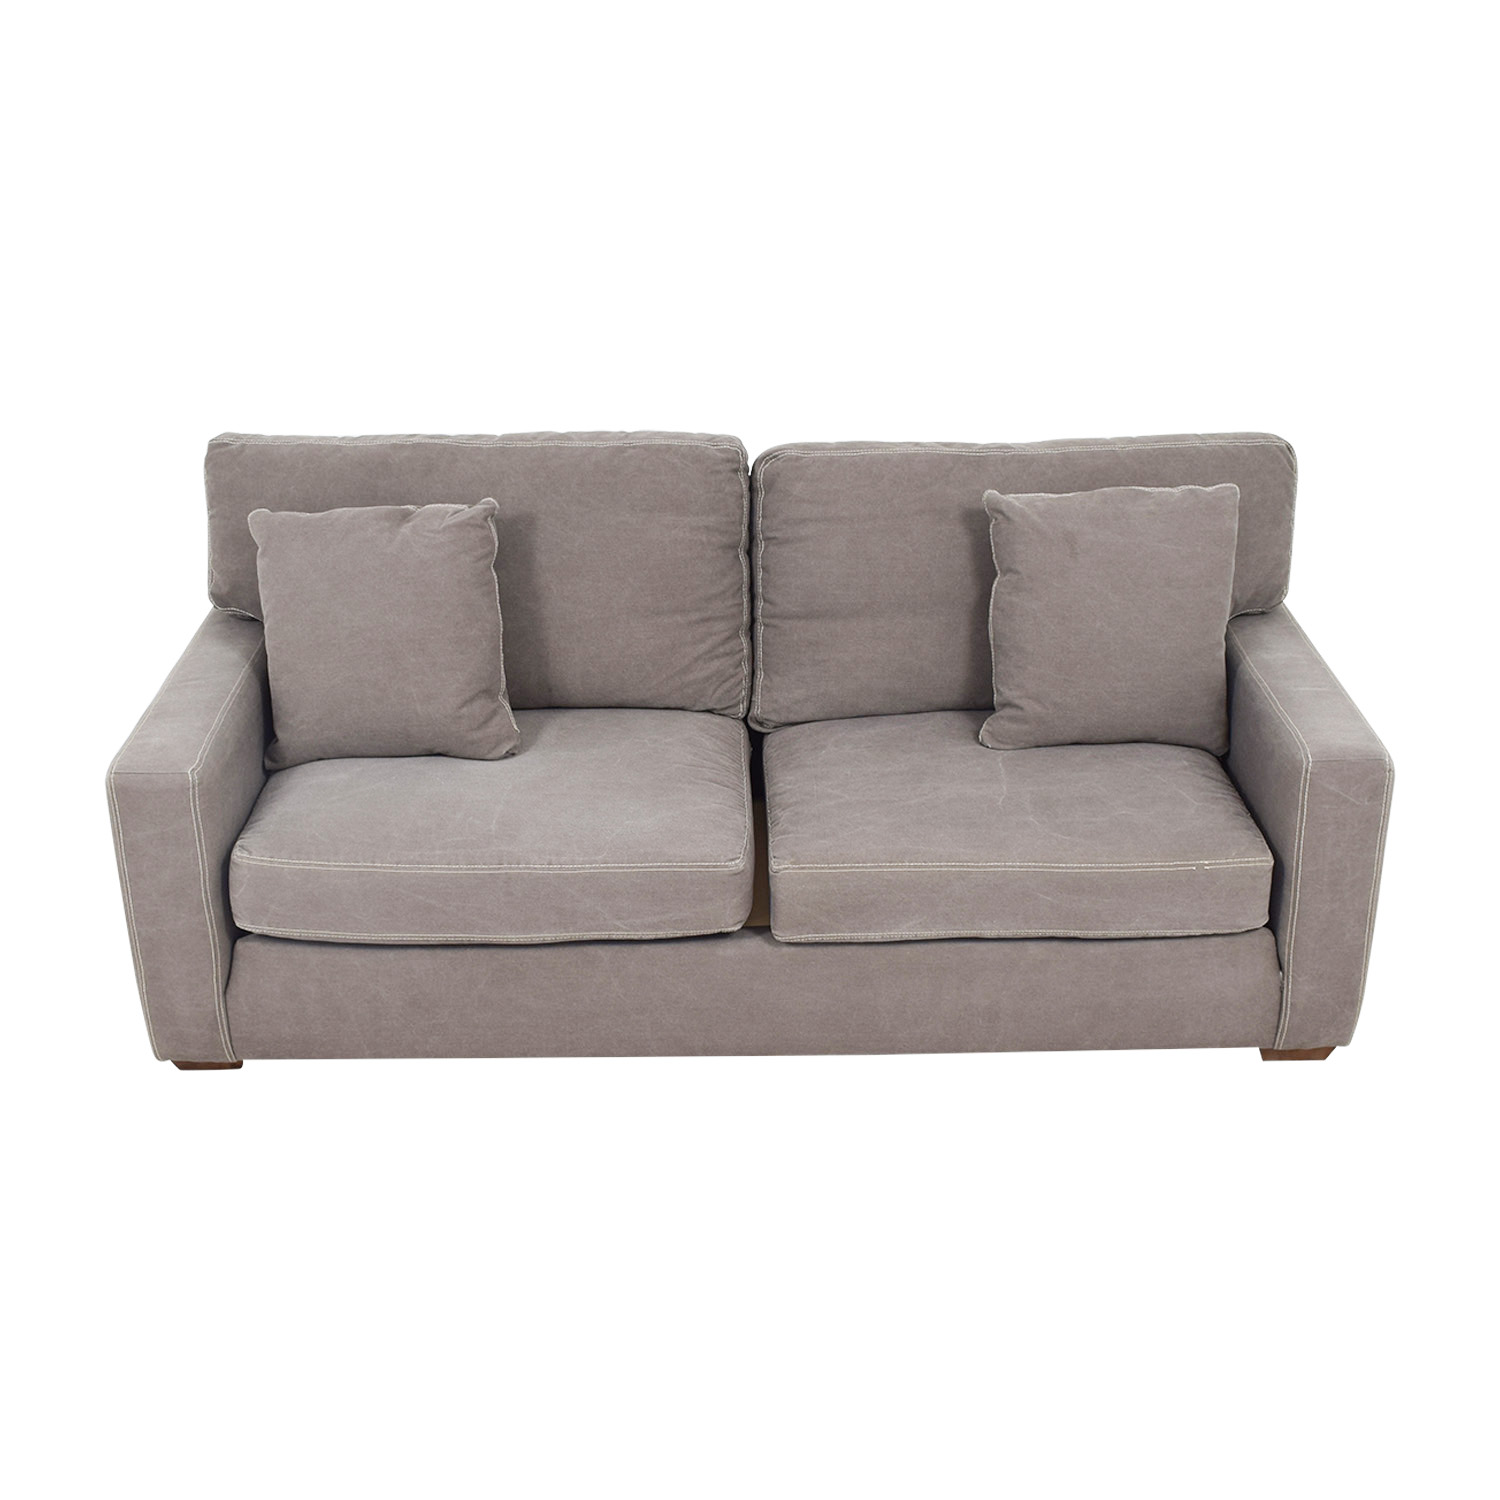 shop Klaussner Grey Canvas Two Cushion Sofa Klaussner Classic Sofas